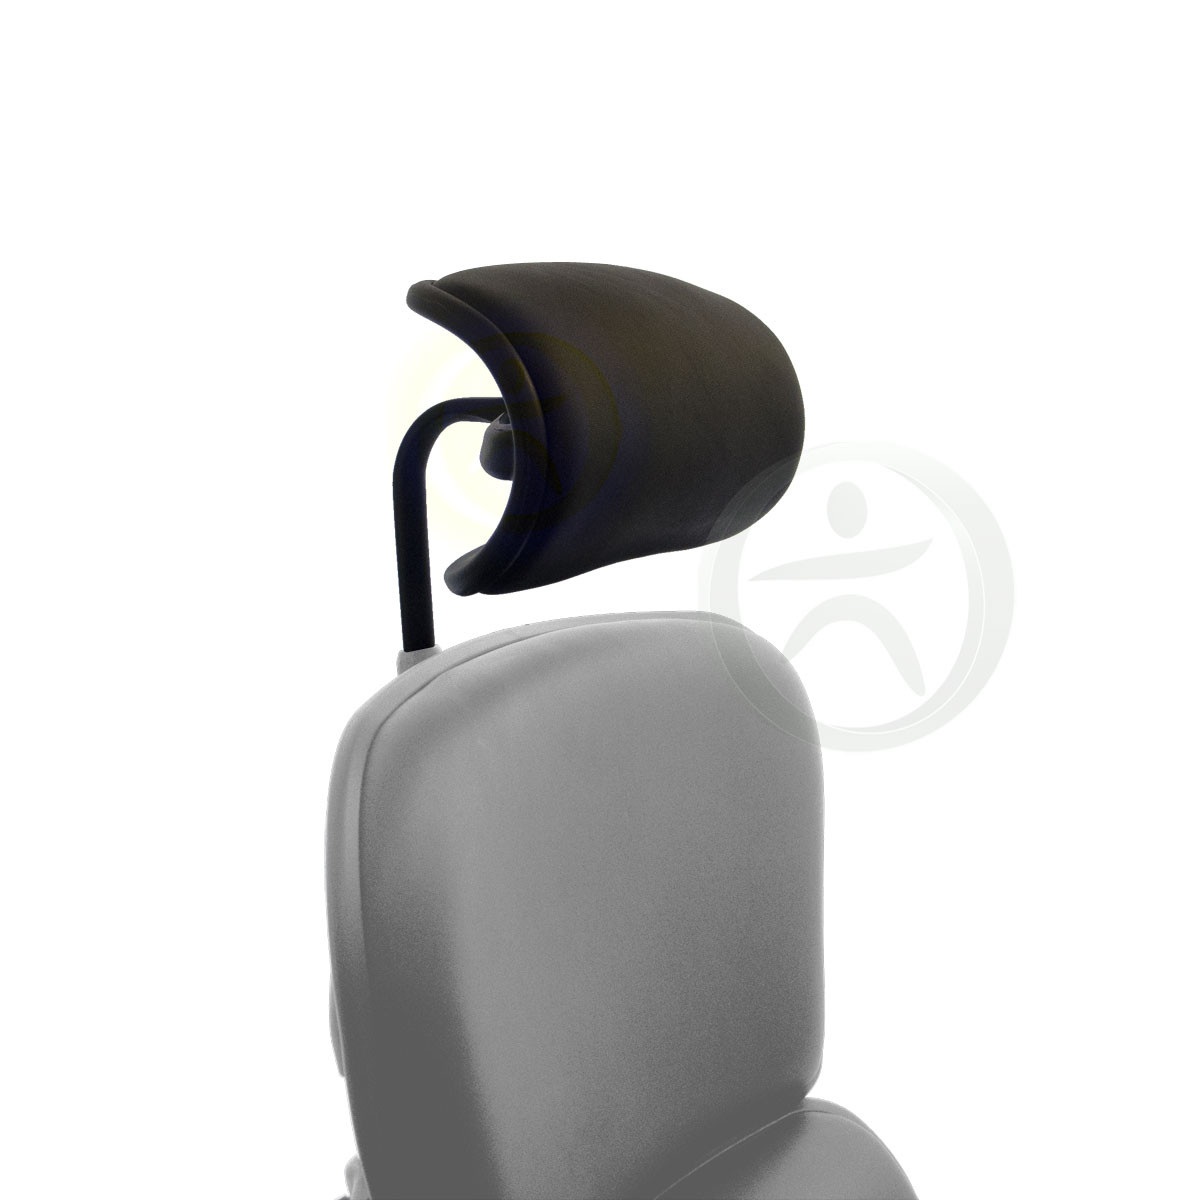 raynor ergohuman chair zeus gaming replacement leather headrest for le9erg